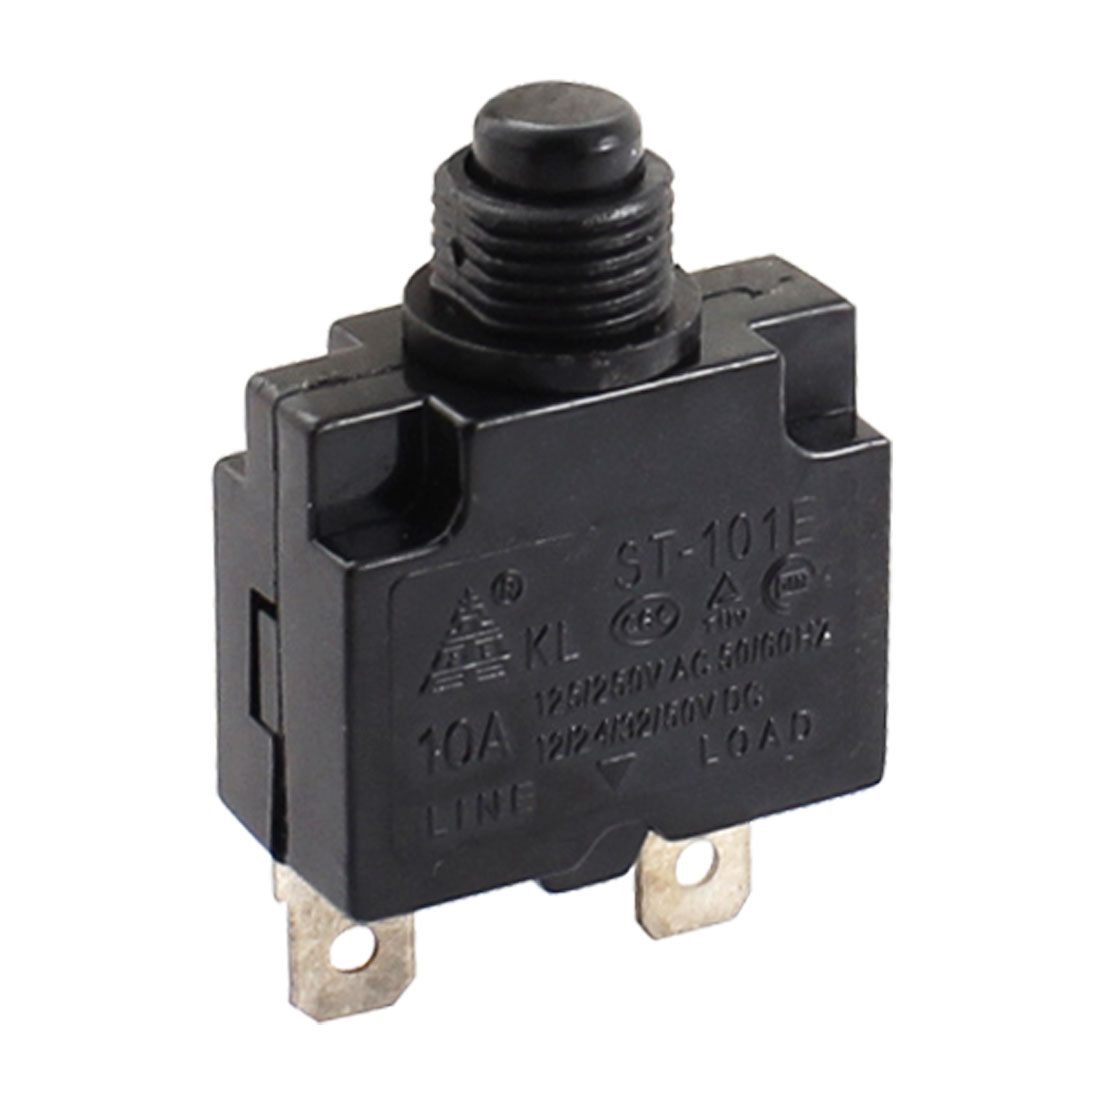 AC 125V/250V 50/60Hz 10A Terminal Toggle Switch Black Silver Tone